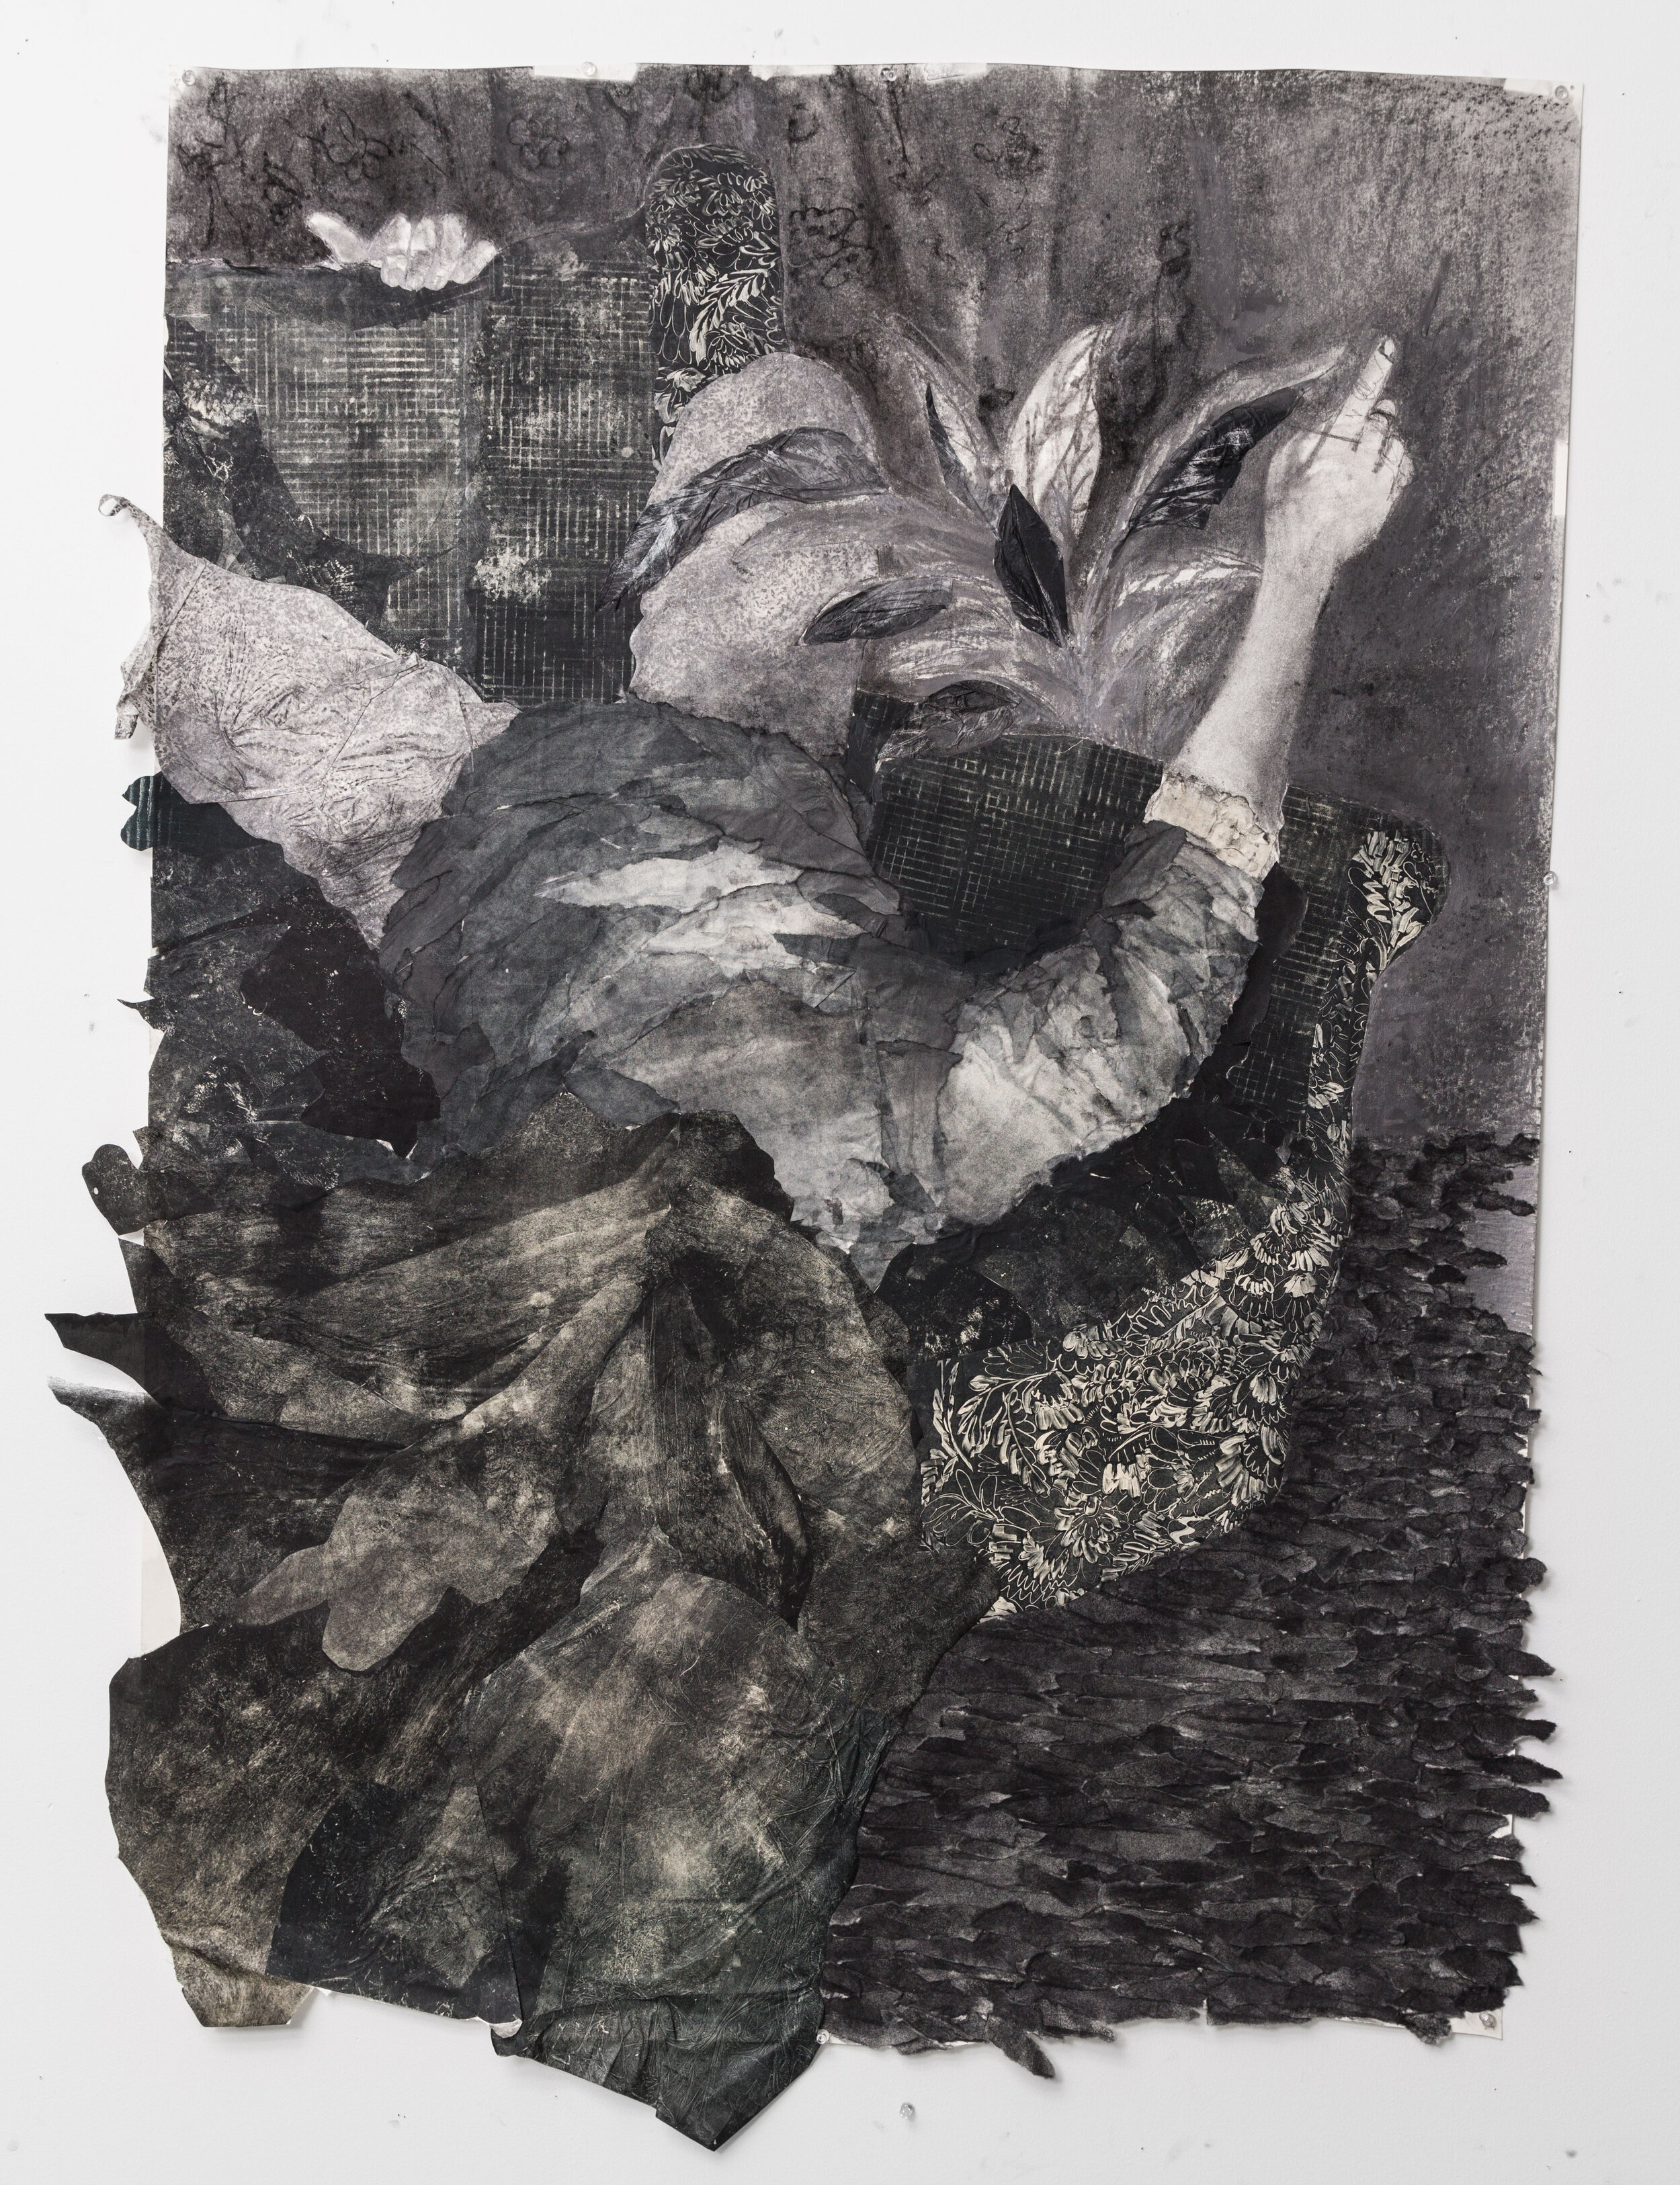 "Between Mary Jane's shrouded thoughts  36"" x 48""  2018  Collagraph print, monoprint and graphite on paper."